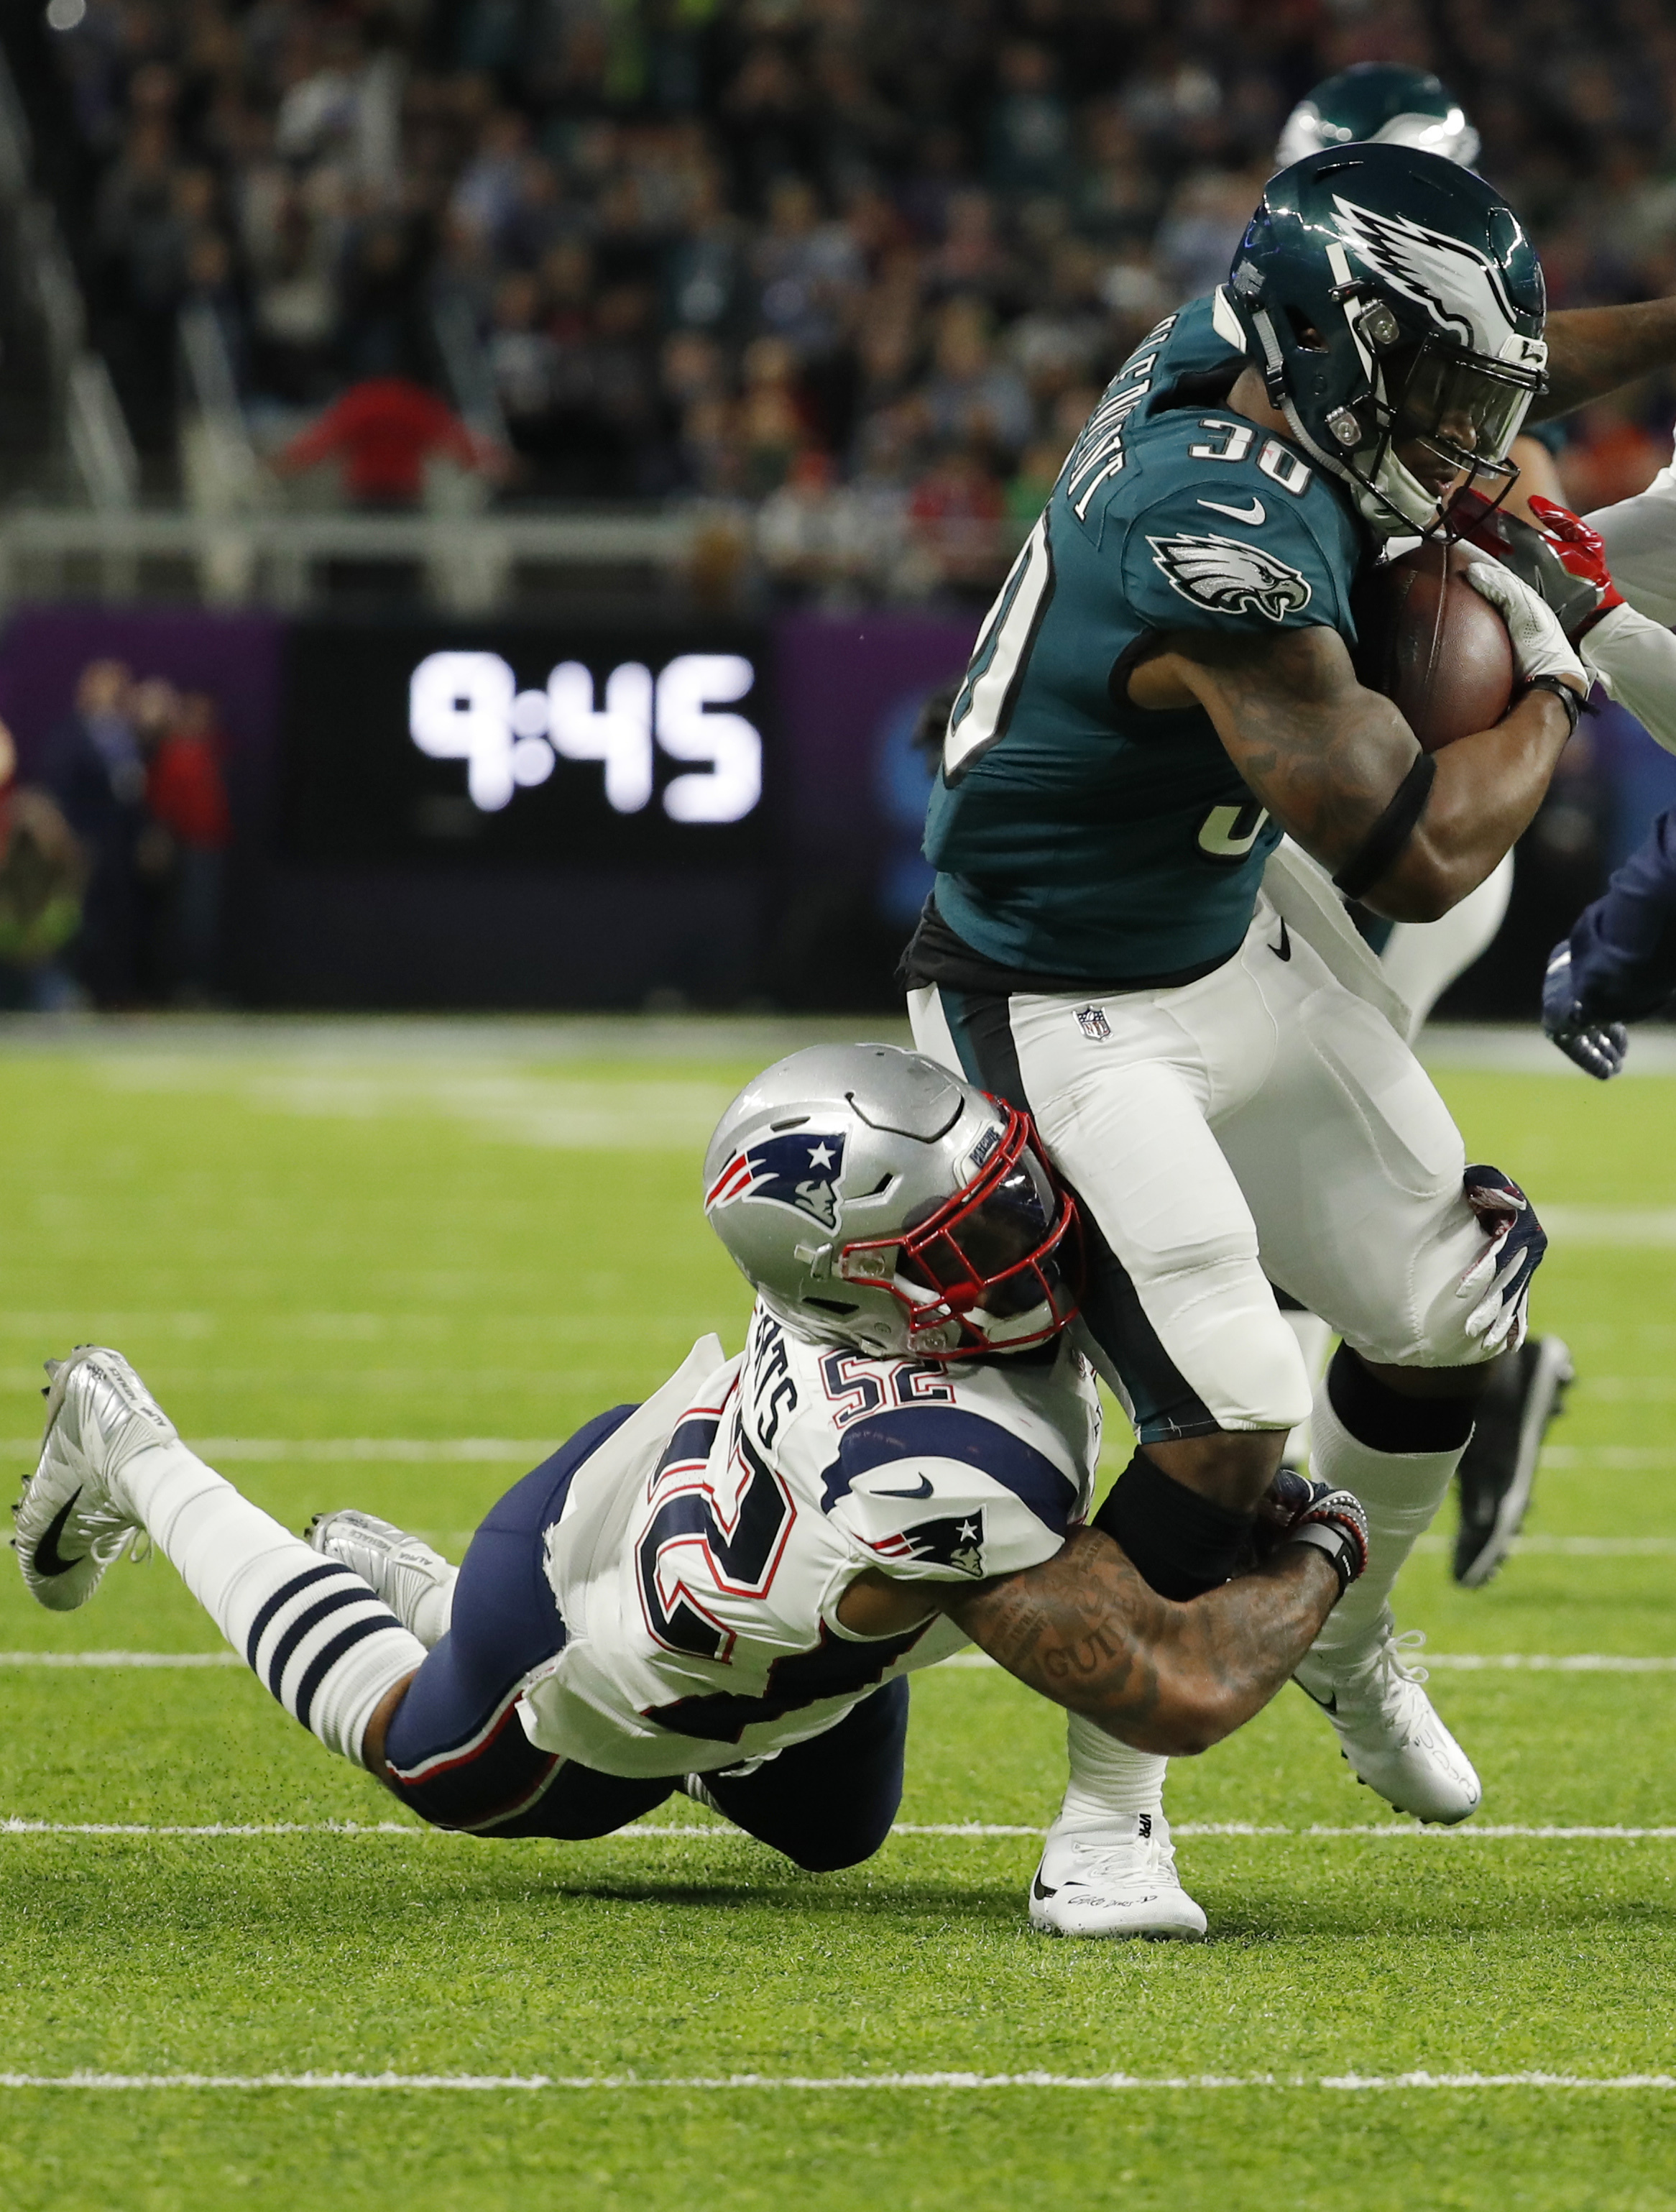 "<div class=""meta image-caption""><div class=""origin-logo origin-image ap""><span>AP</span></div><span class=""caption-text"">Philadelphia Eagles running back Corey Clement (30) carries the ball, as New England Patriots outside linebacker Elandon Roberts (52) makes the tackle, during the first half. (AP Photo/Chris O'Meara)</span></div>"